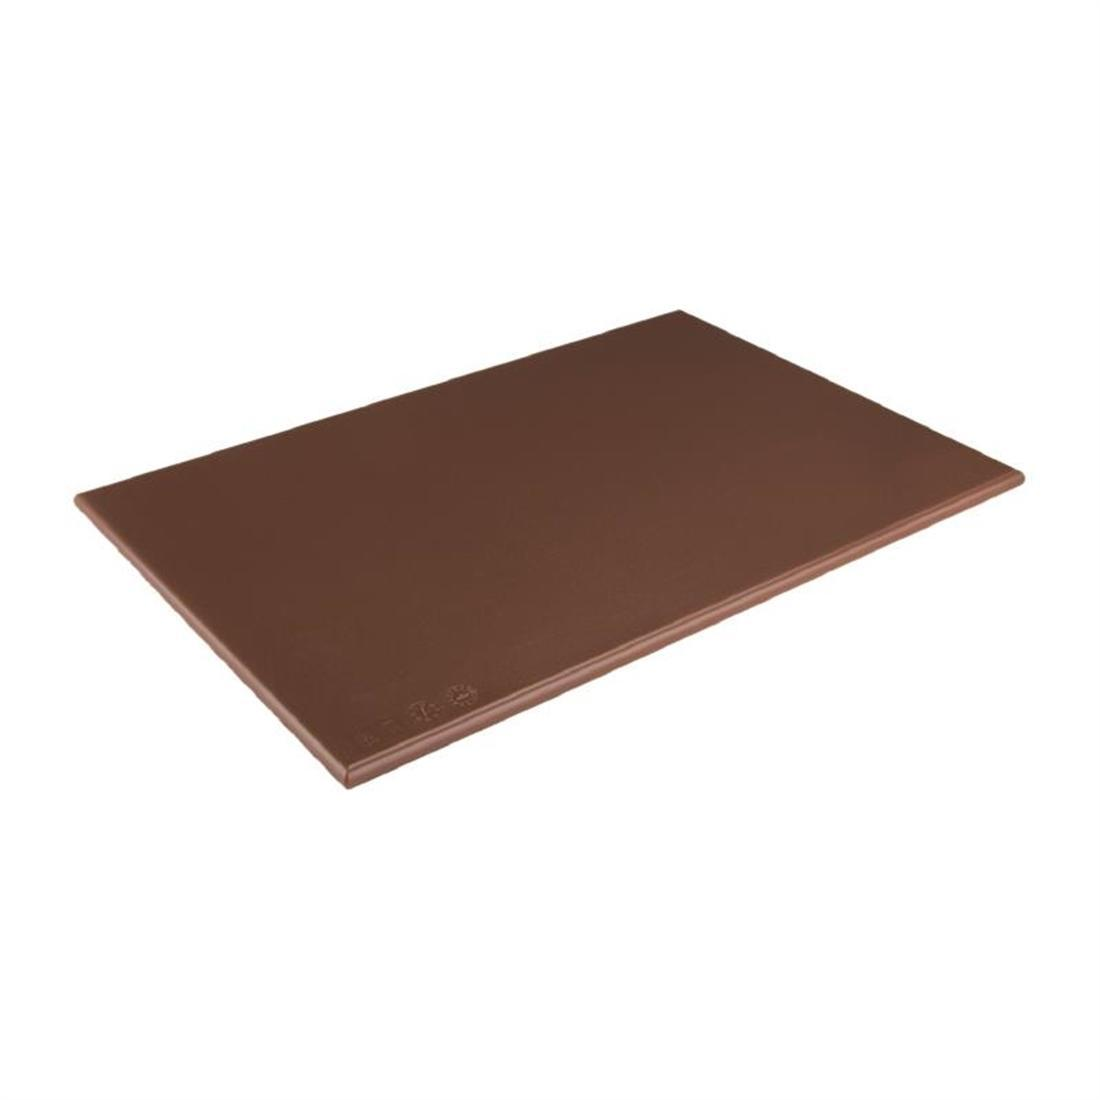 Hygiplas High Density Brown Chopping Board Standard